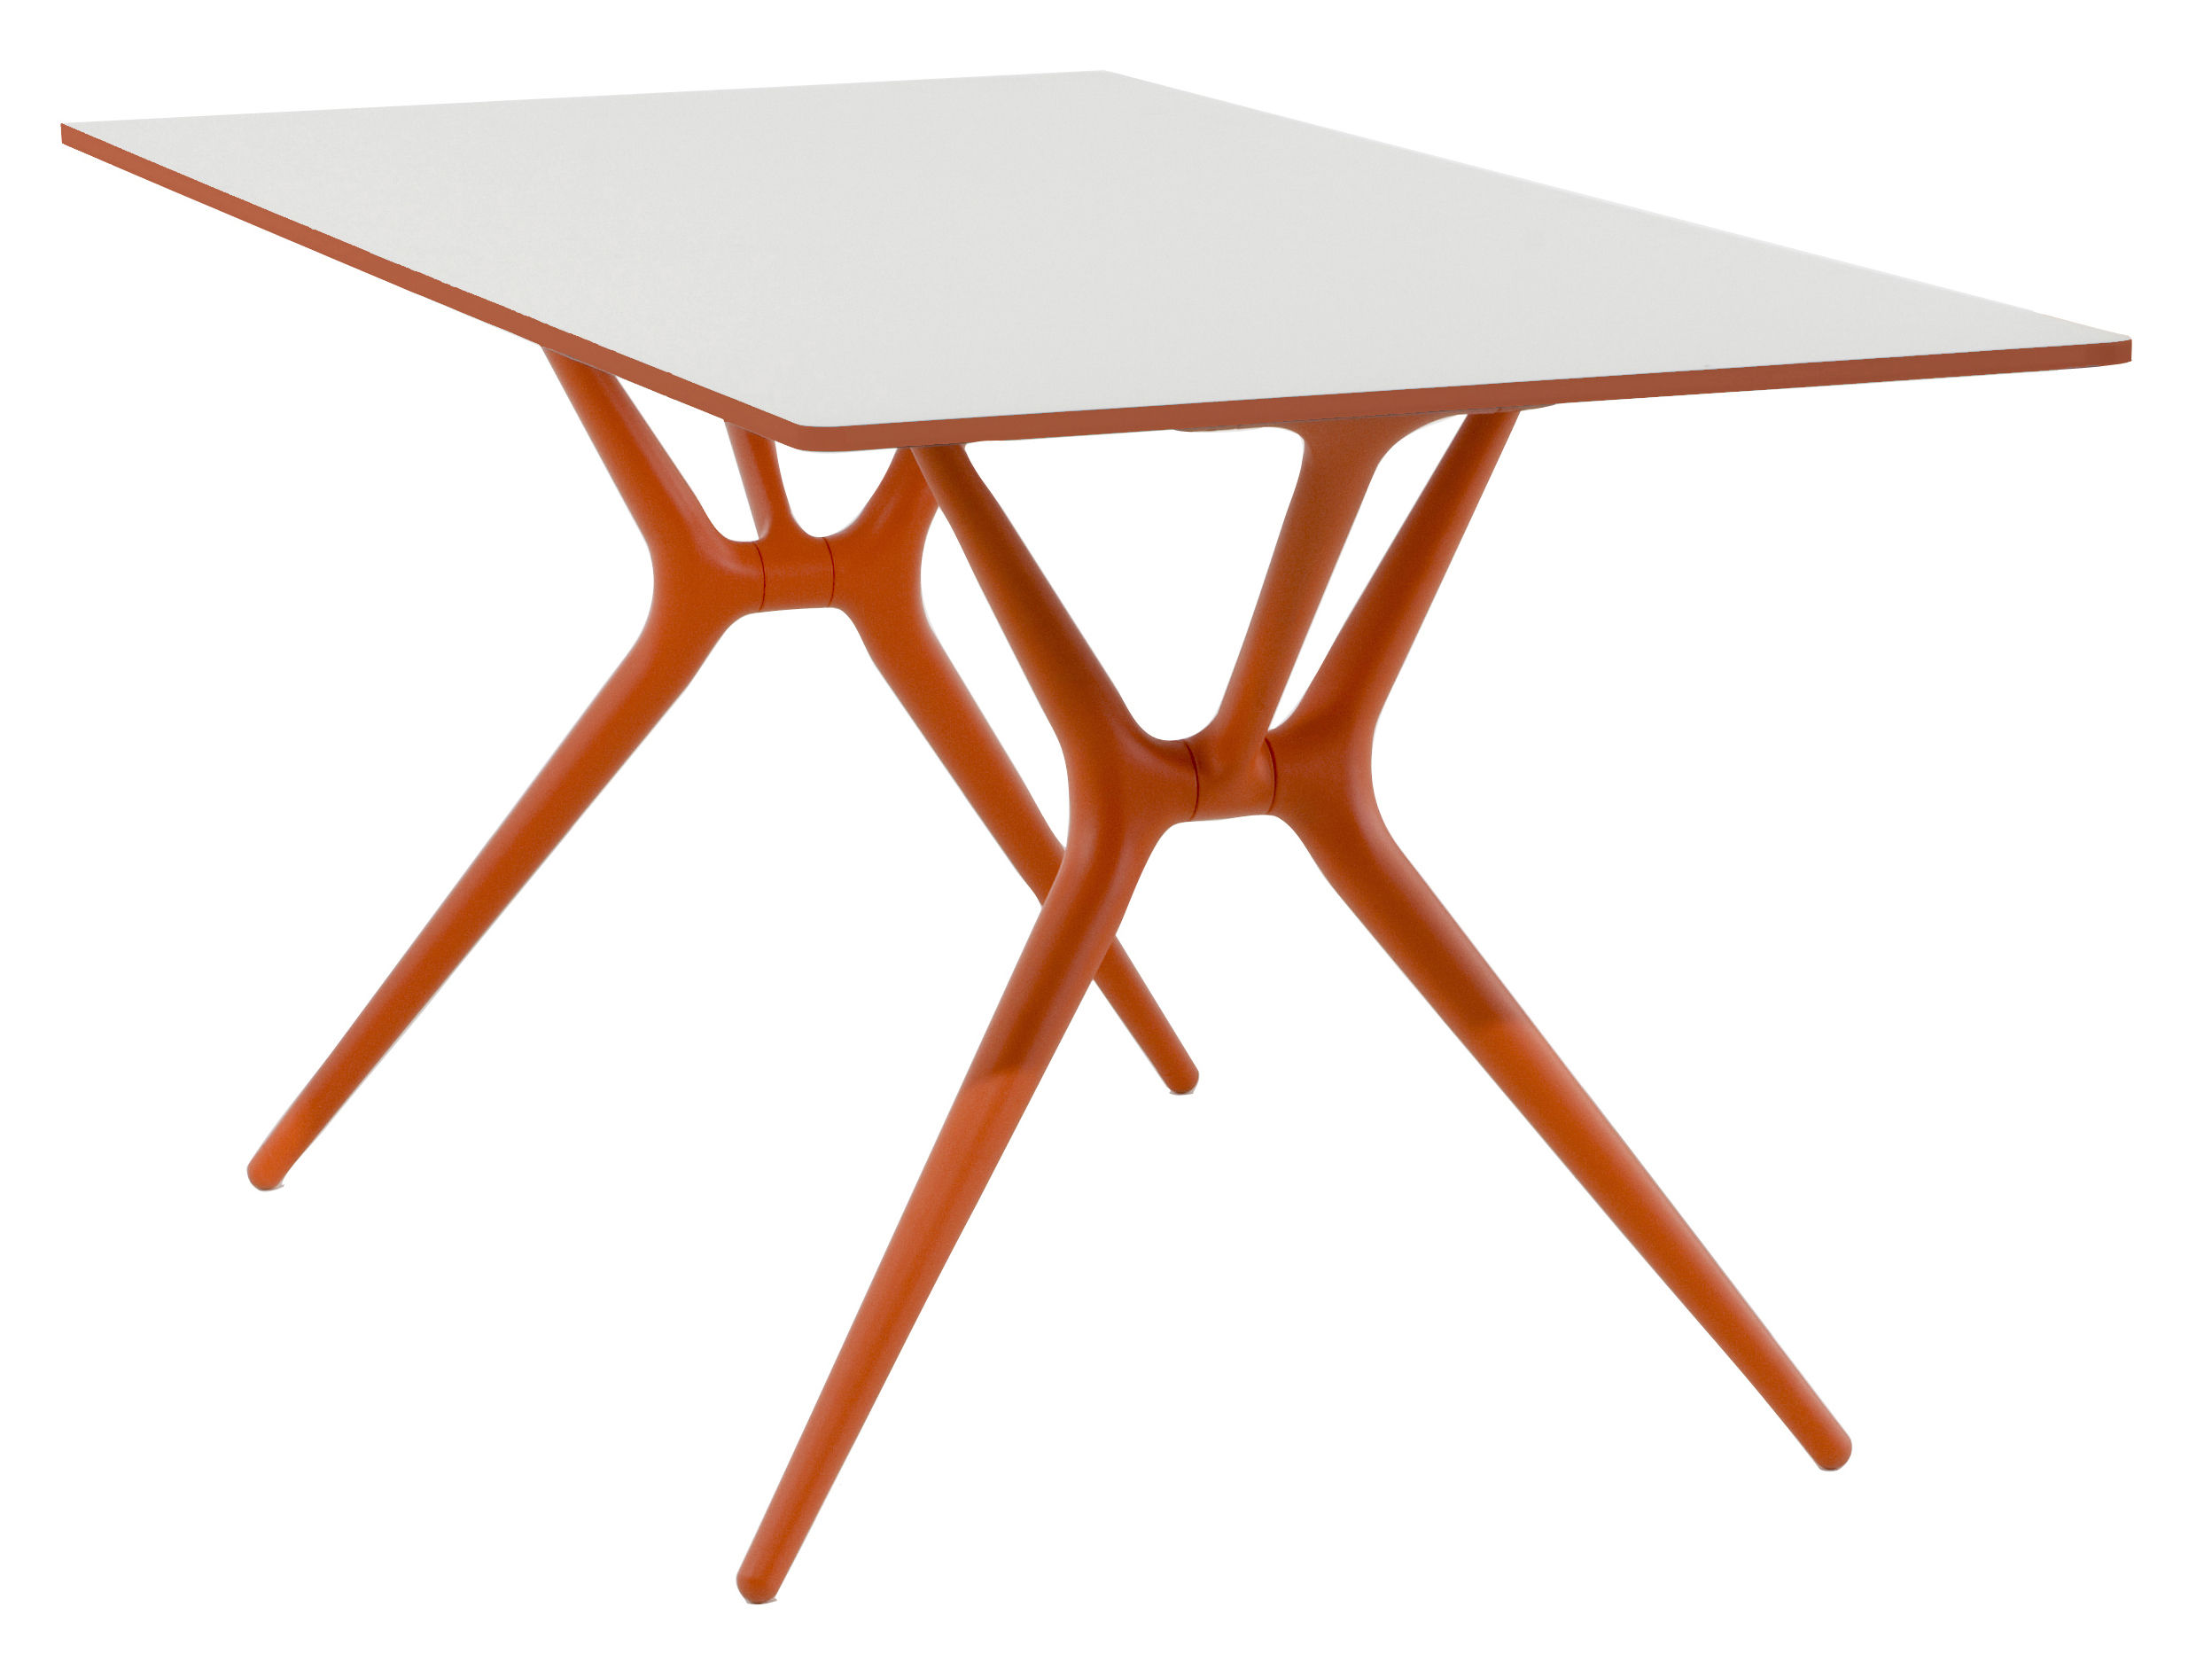 Spoon foldable table 140 x 70 cm white orange feet by for Table 140 x 70